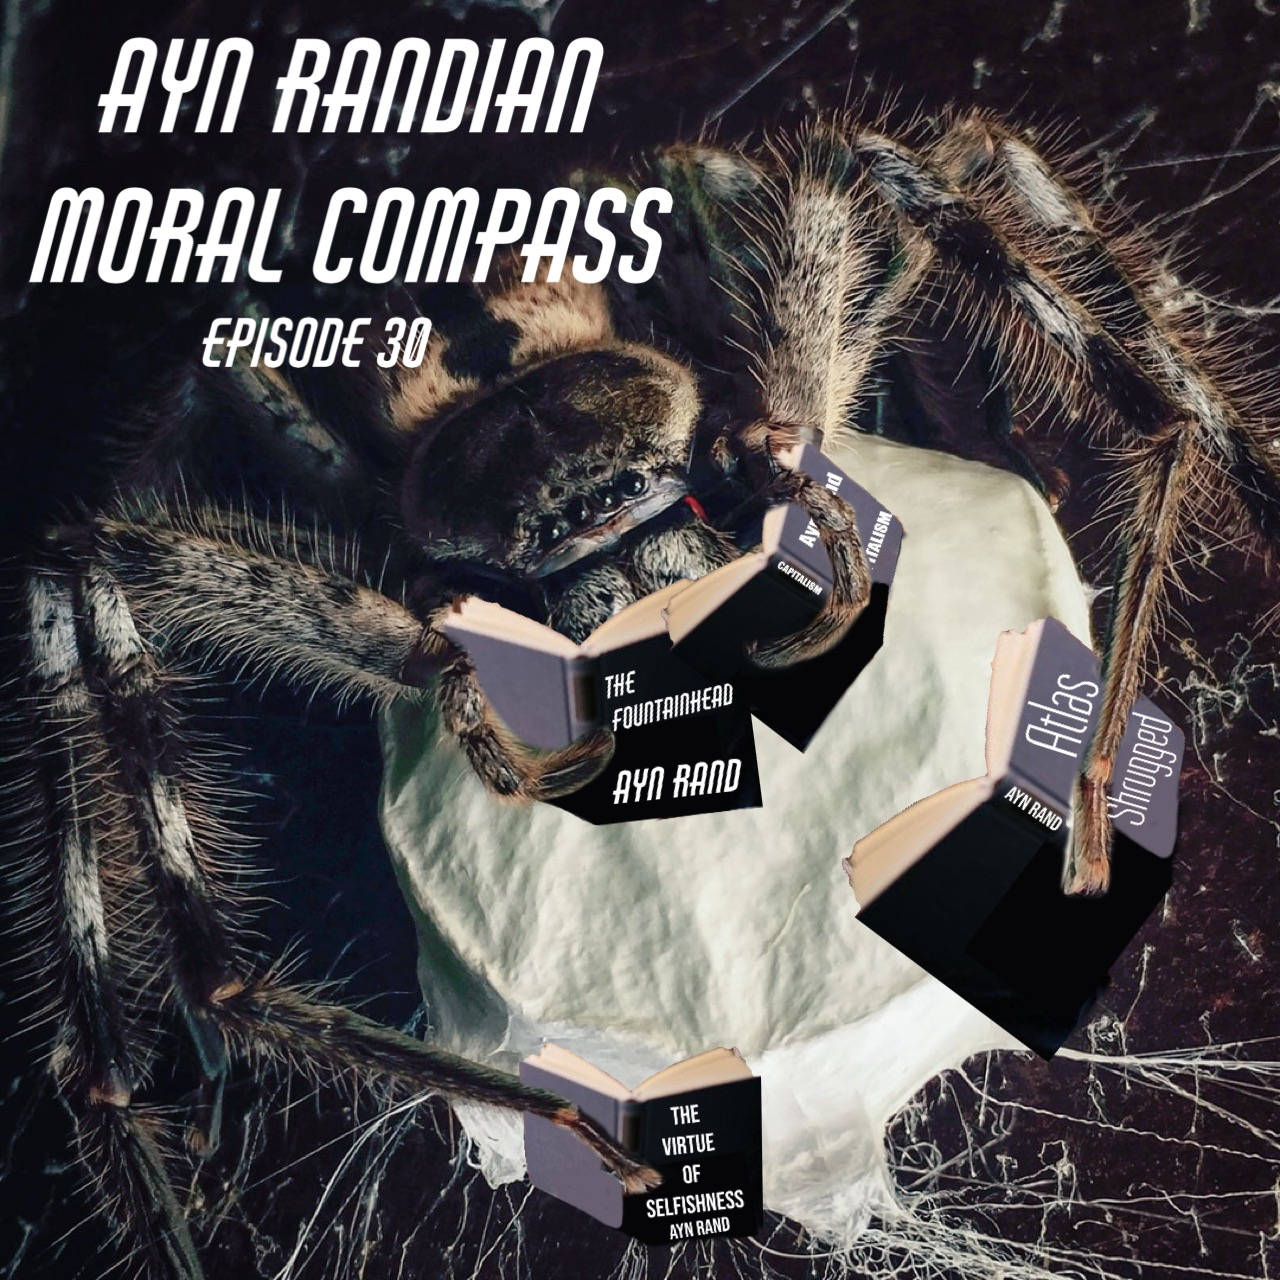 spider-reading-ayn-rand